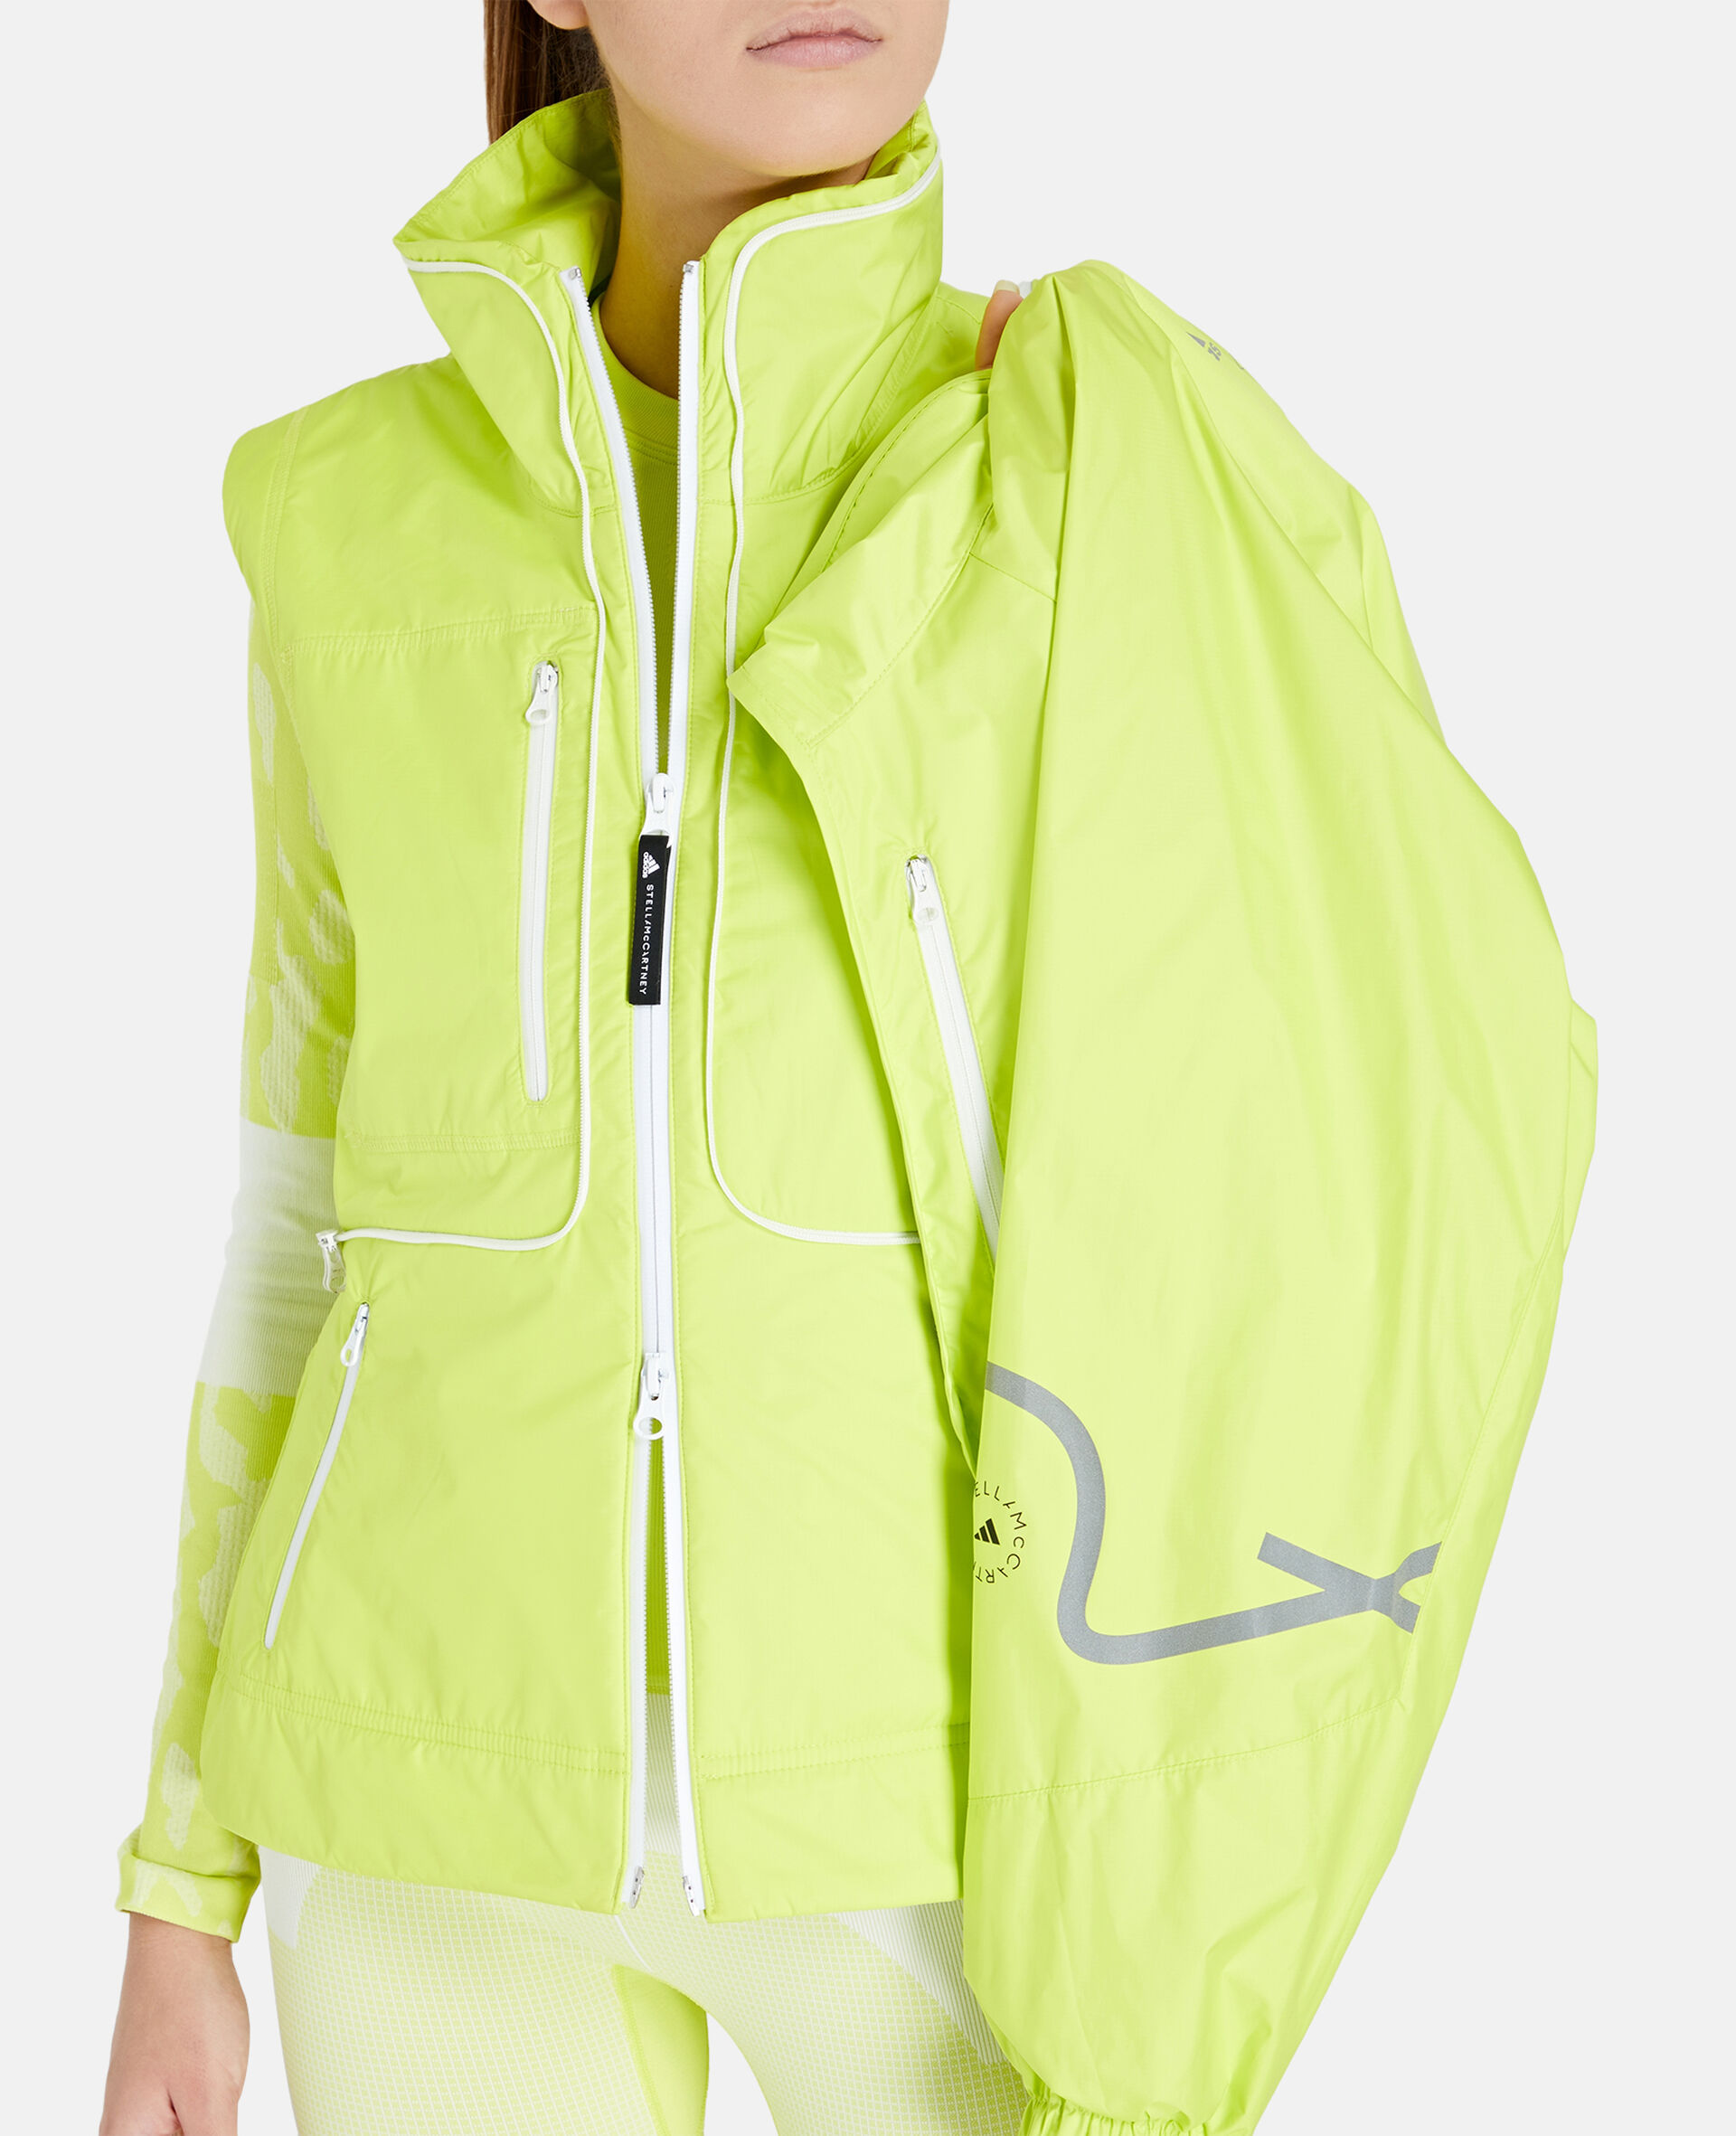 TruePace 2-in-1 Running Jacket-Yellow-large image number 3